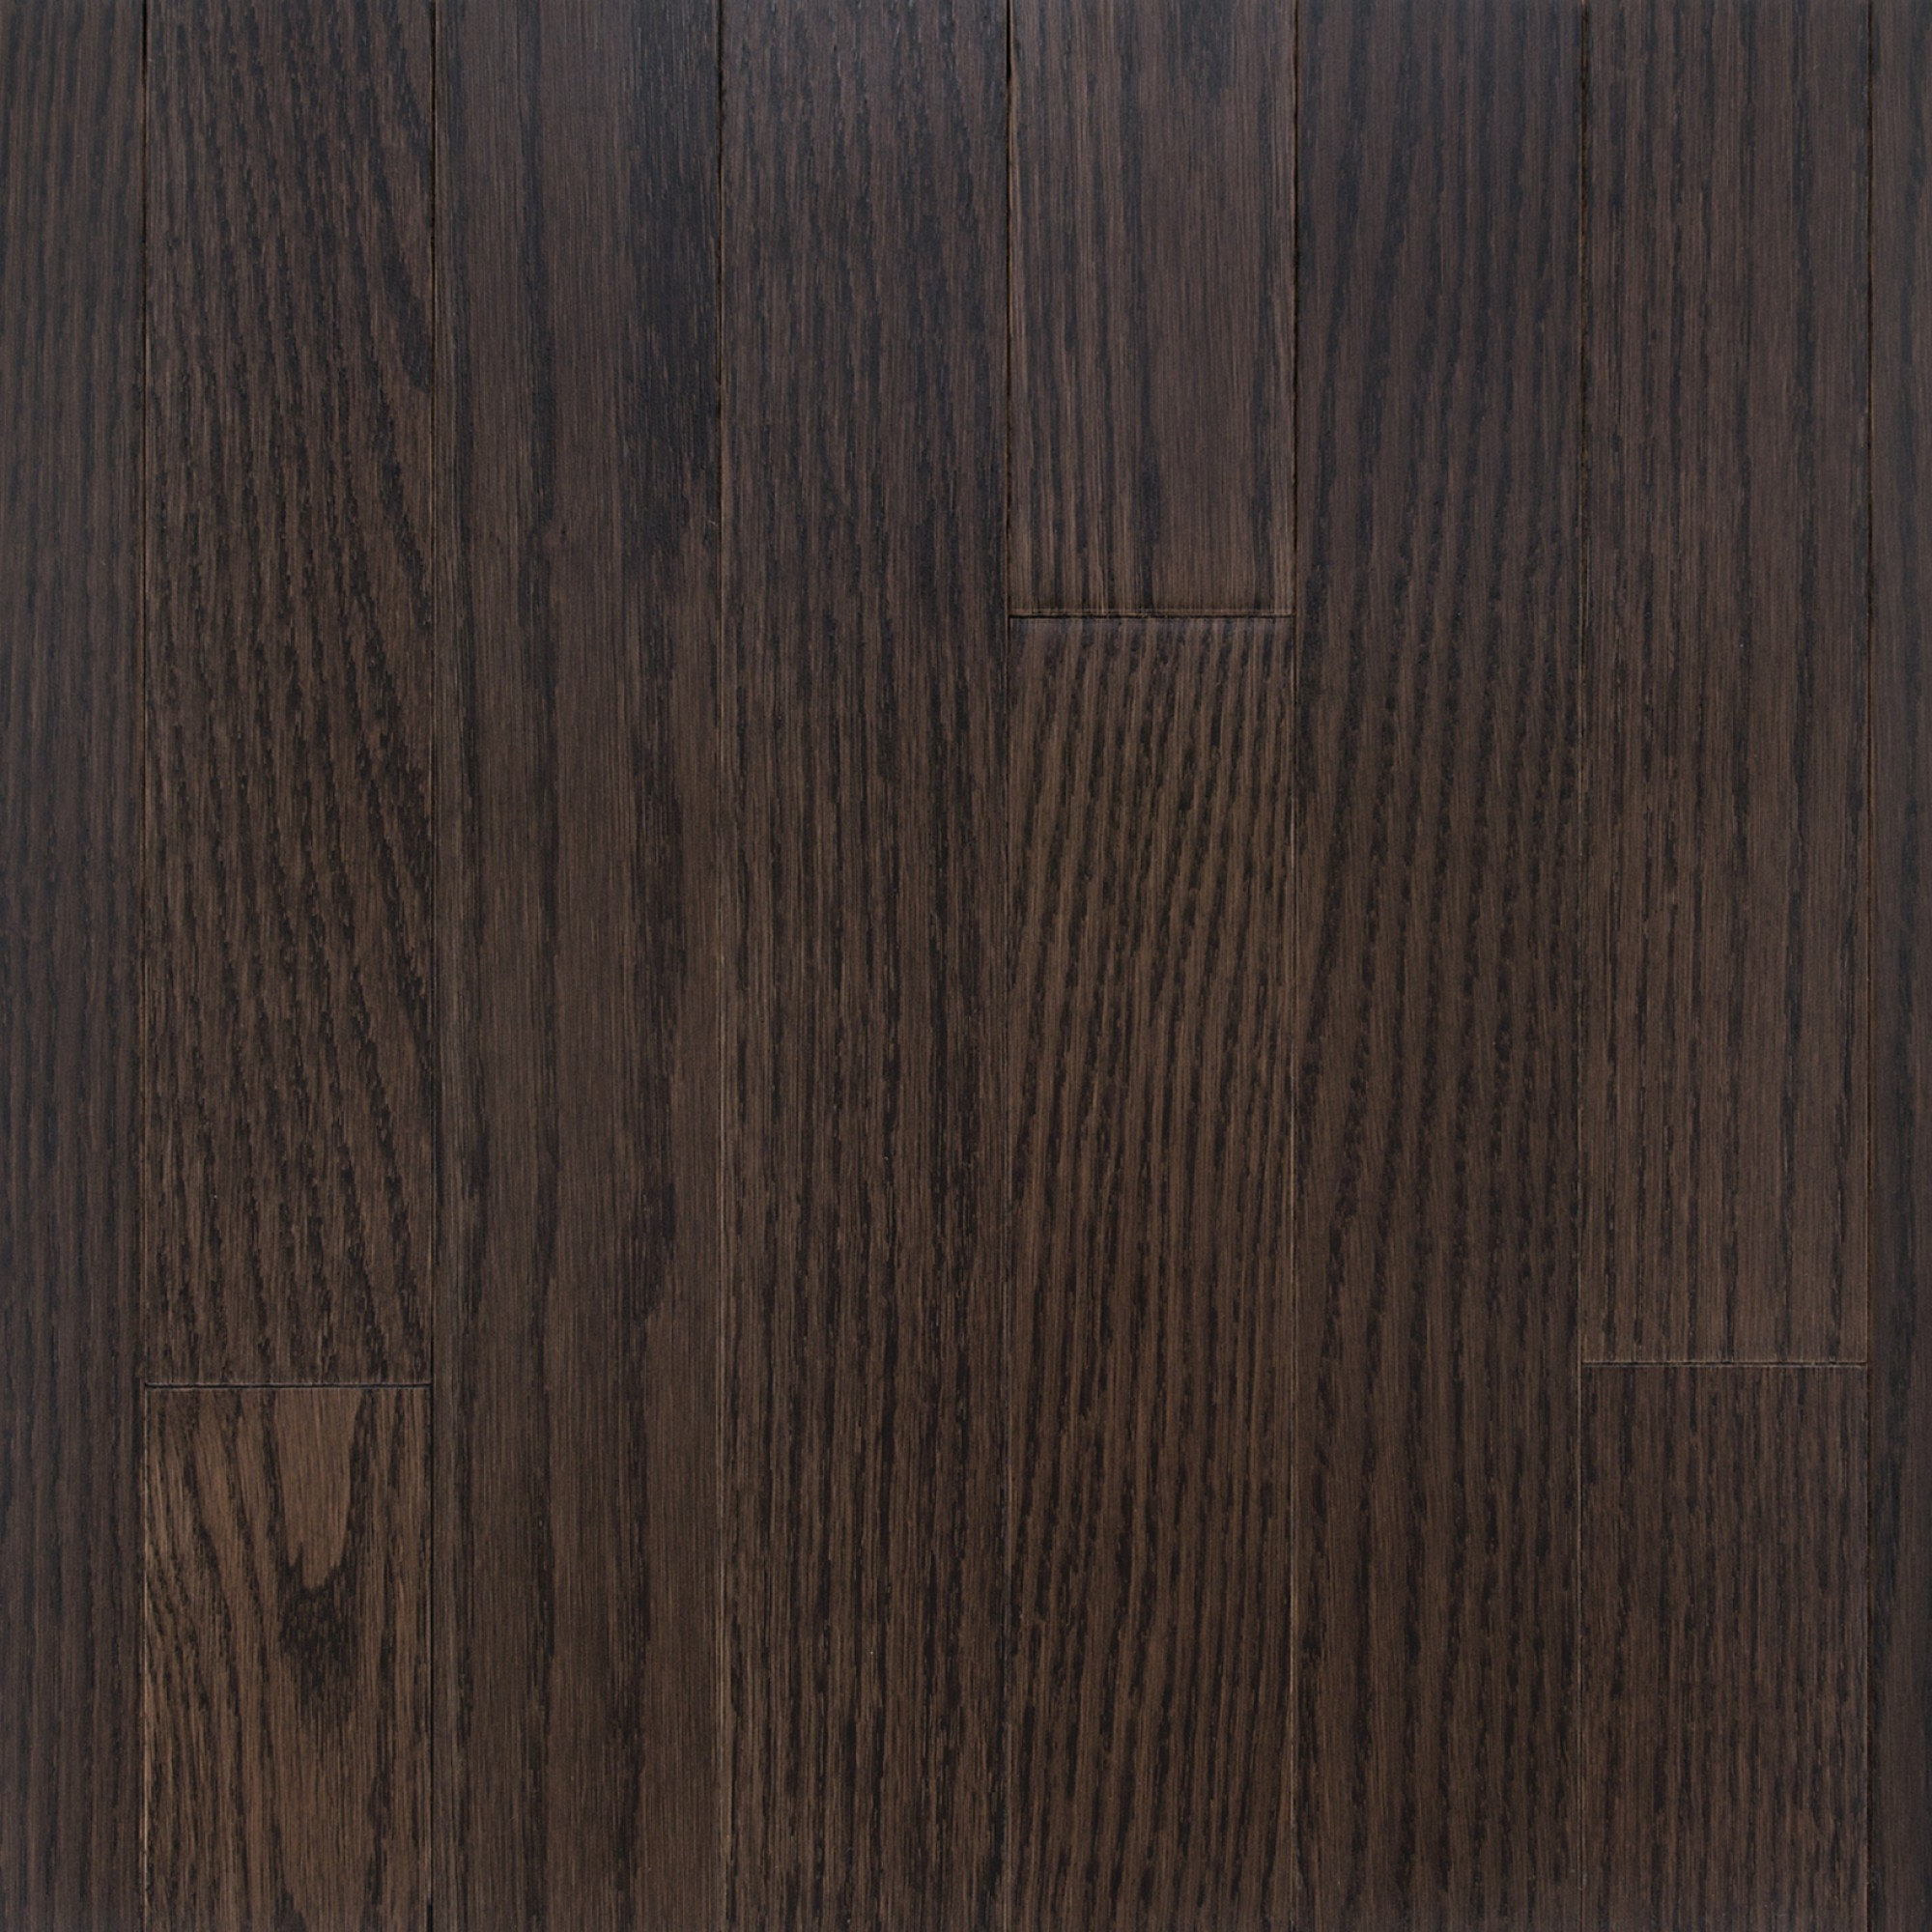 Smooth Red Oak Berkshire Vintage Hardwood Flooring